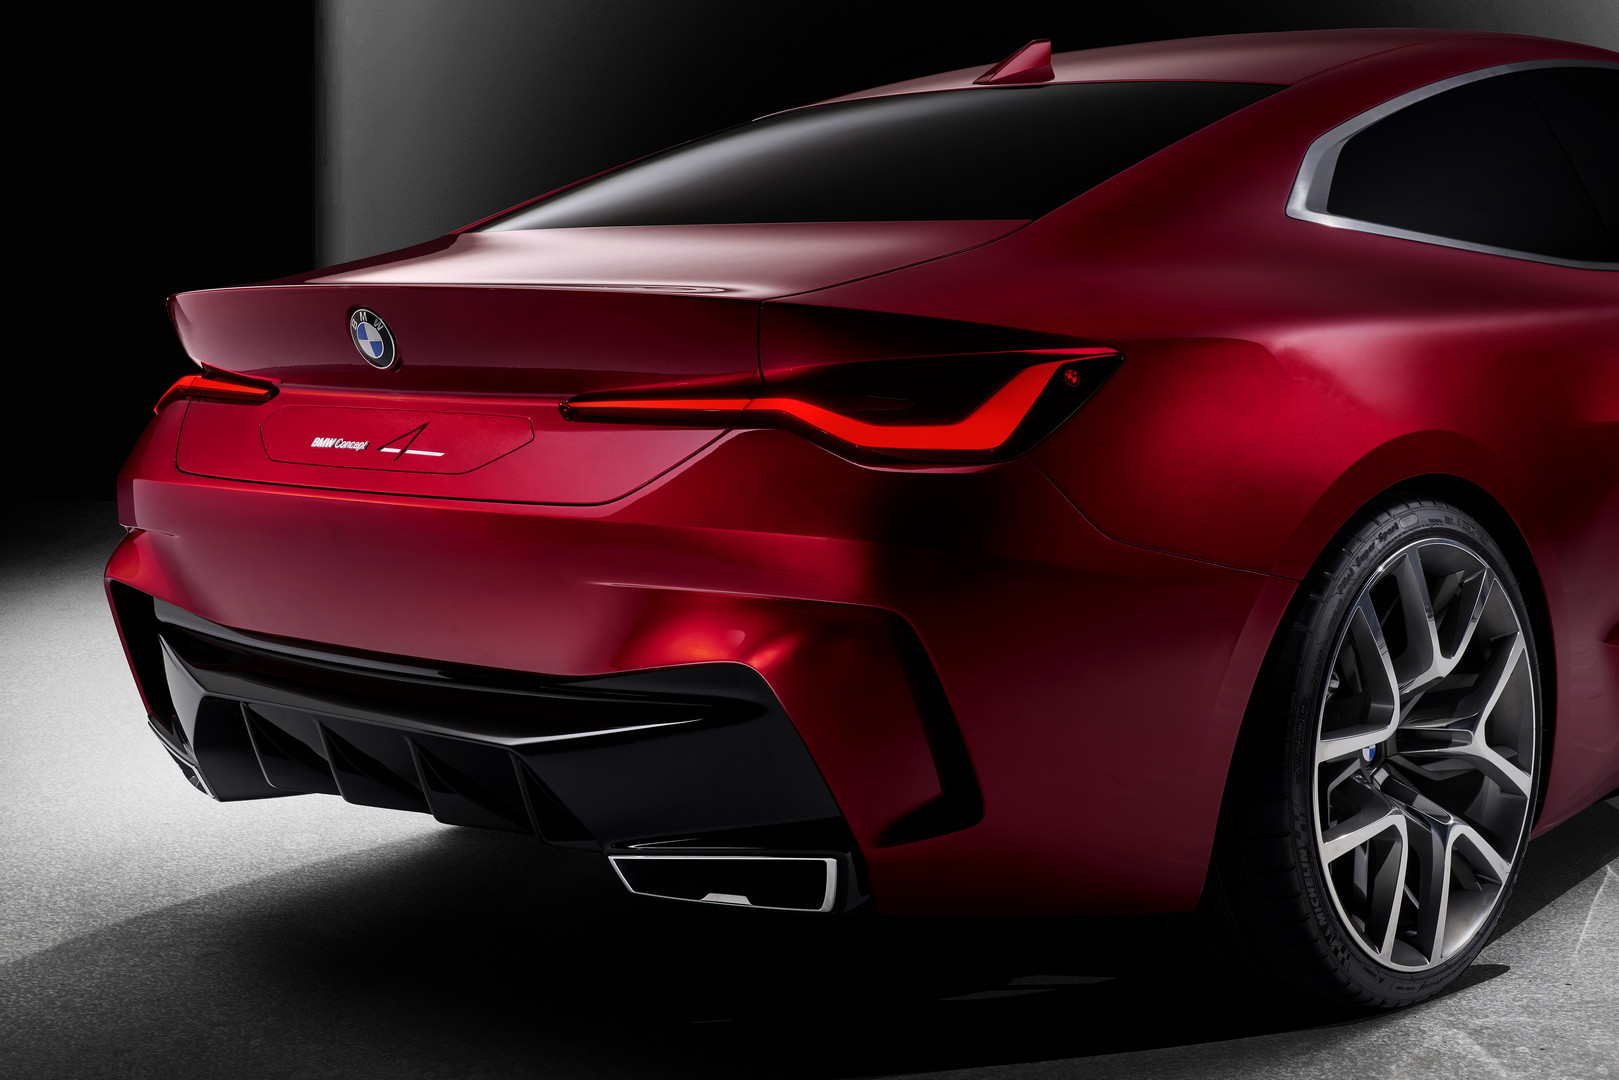 BMW Concept 4 Rear Lights